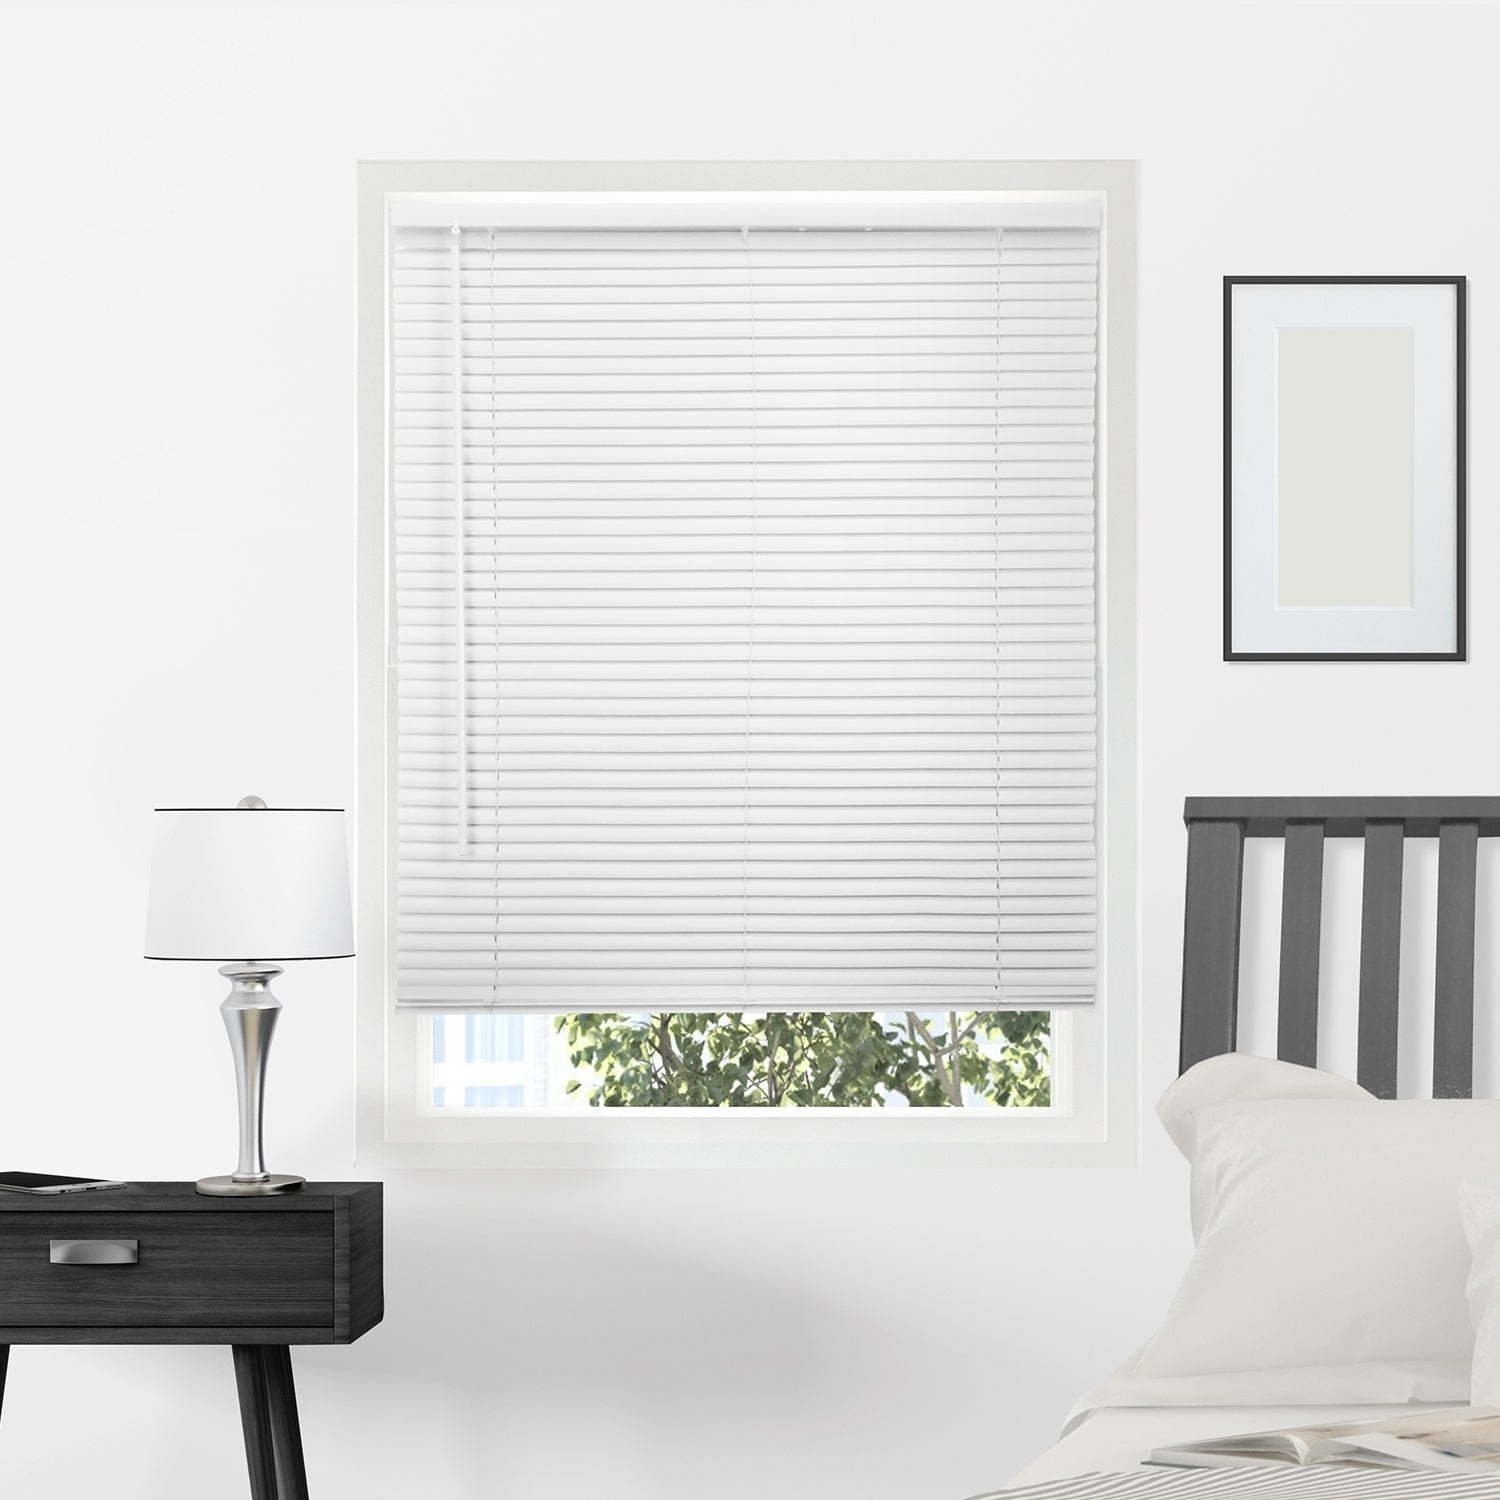 cordless achim blinds amazon kitchen com home by honeycomb pleated window furnishings inch dp white shade